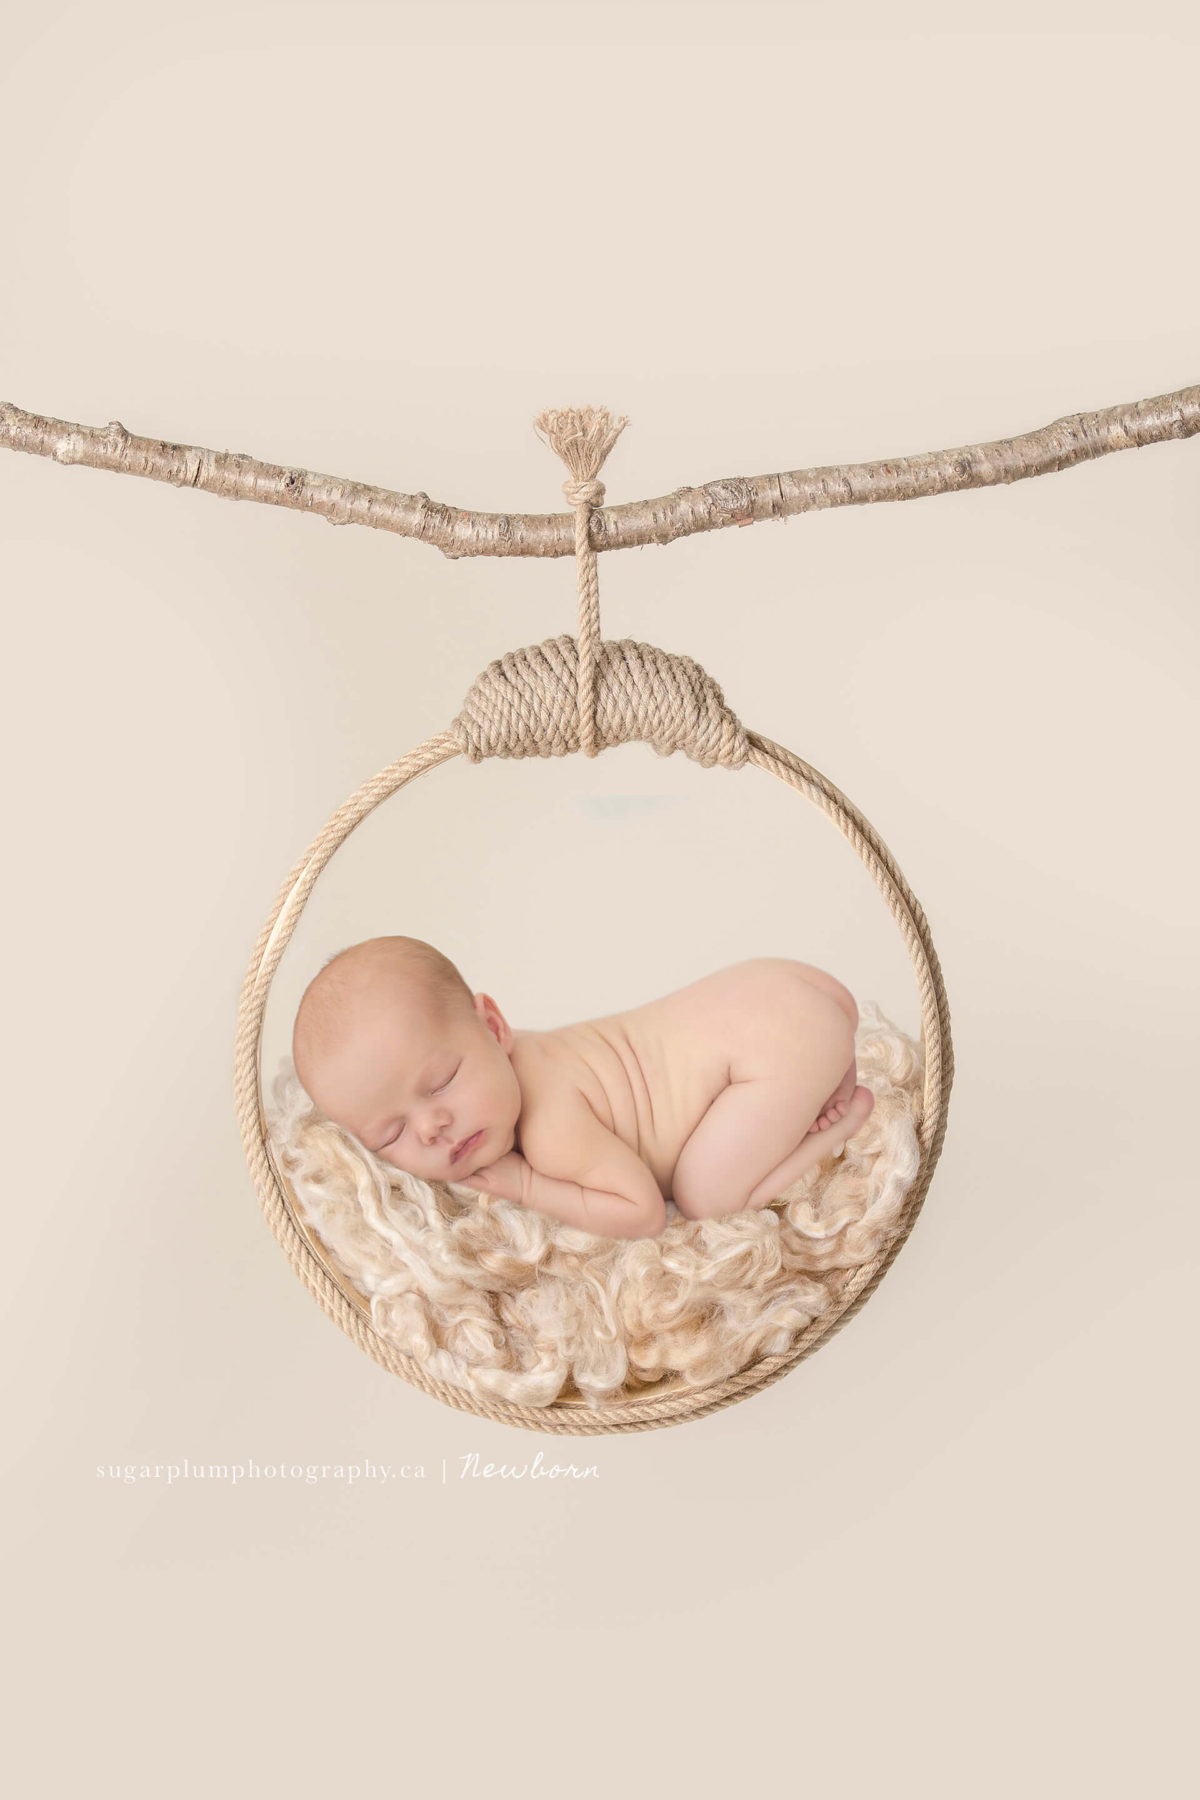 hanging baby composite with hoop on branch